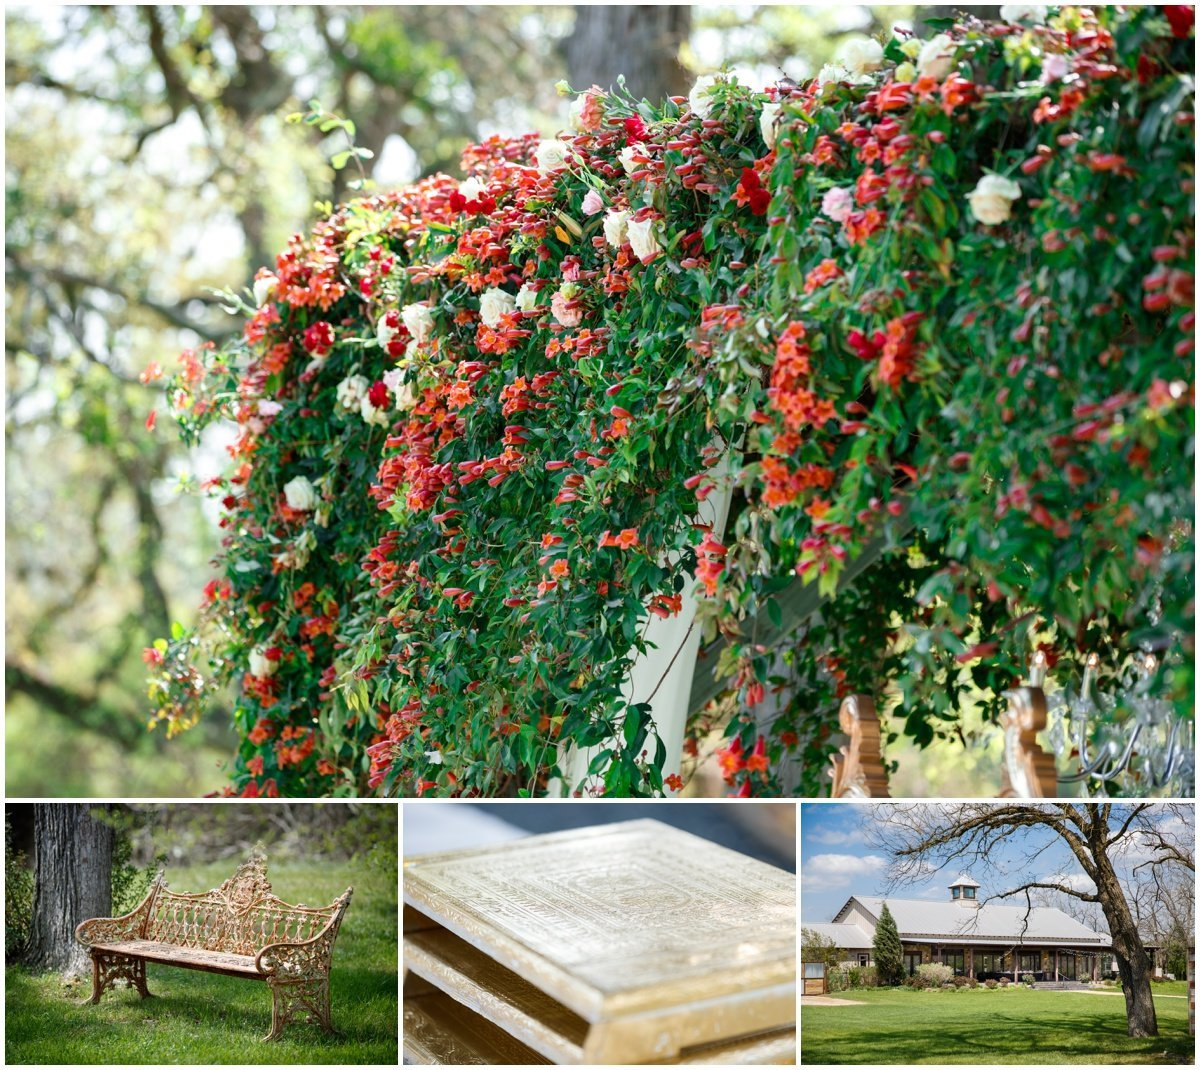 Austin wedding photographer pecan springs ranch wedding photographer ceremony area indian wedding